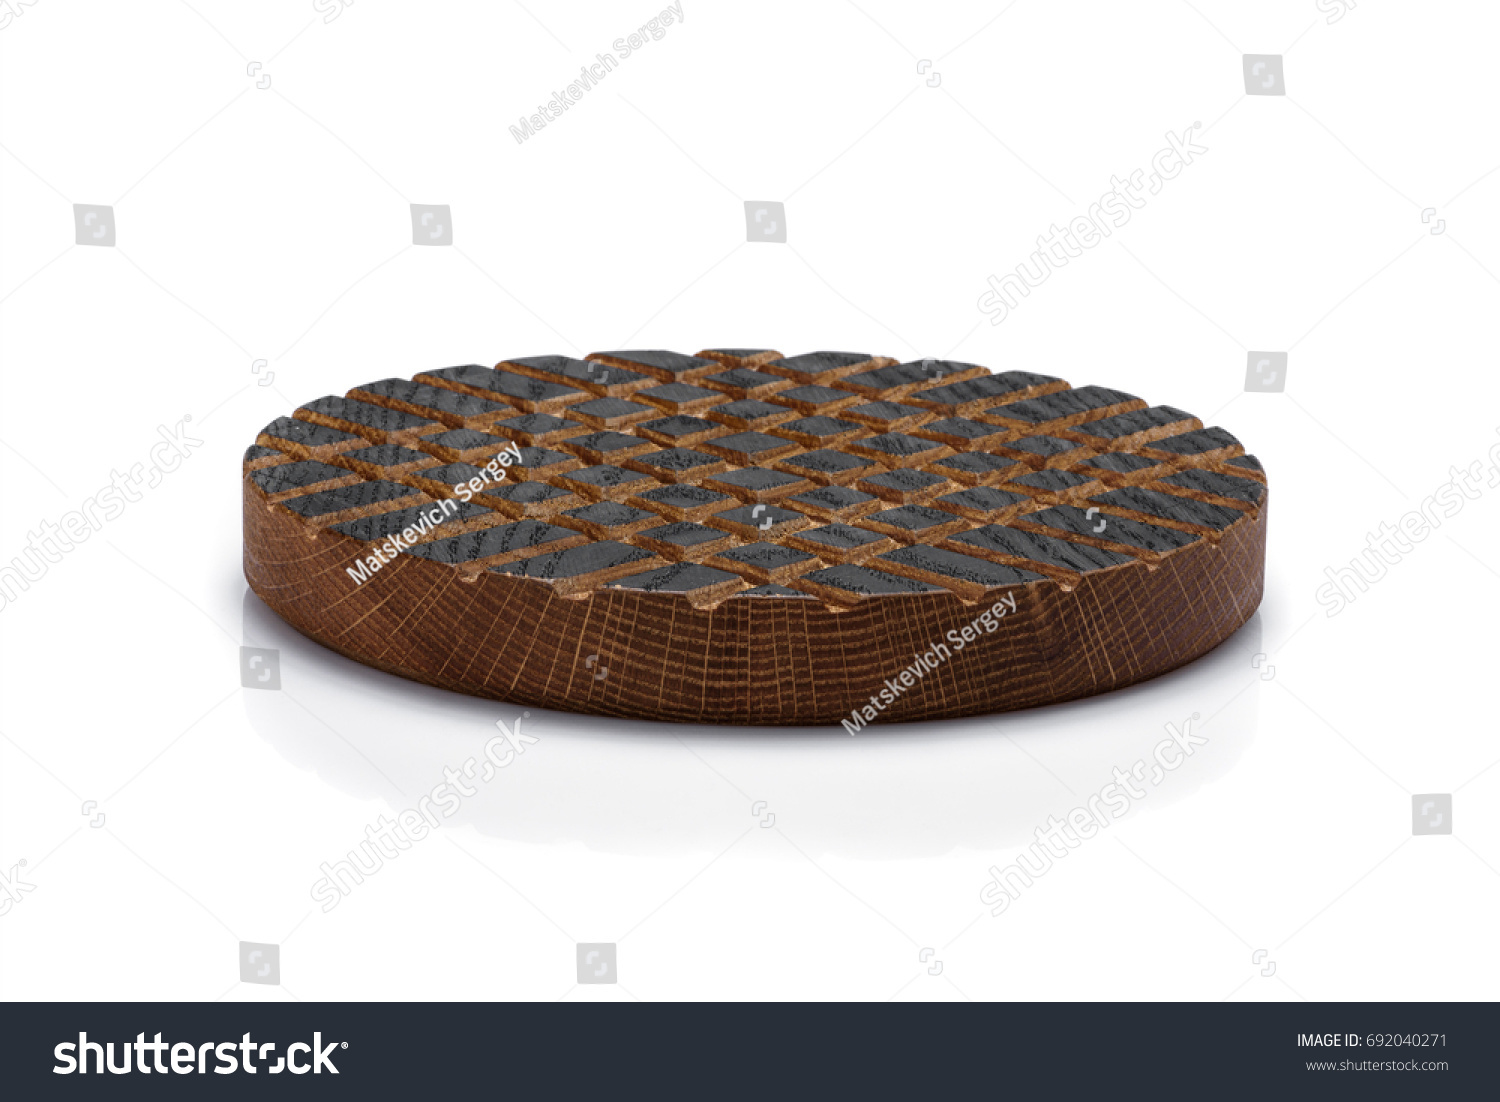 Round wooden stand carved pattern on stock photo edit now